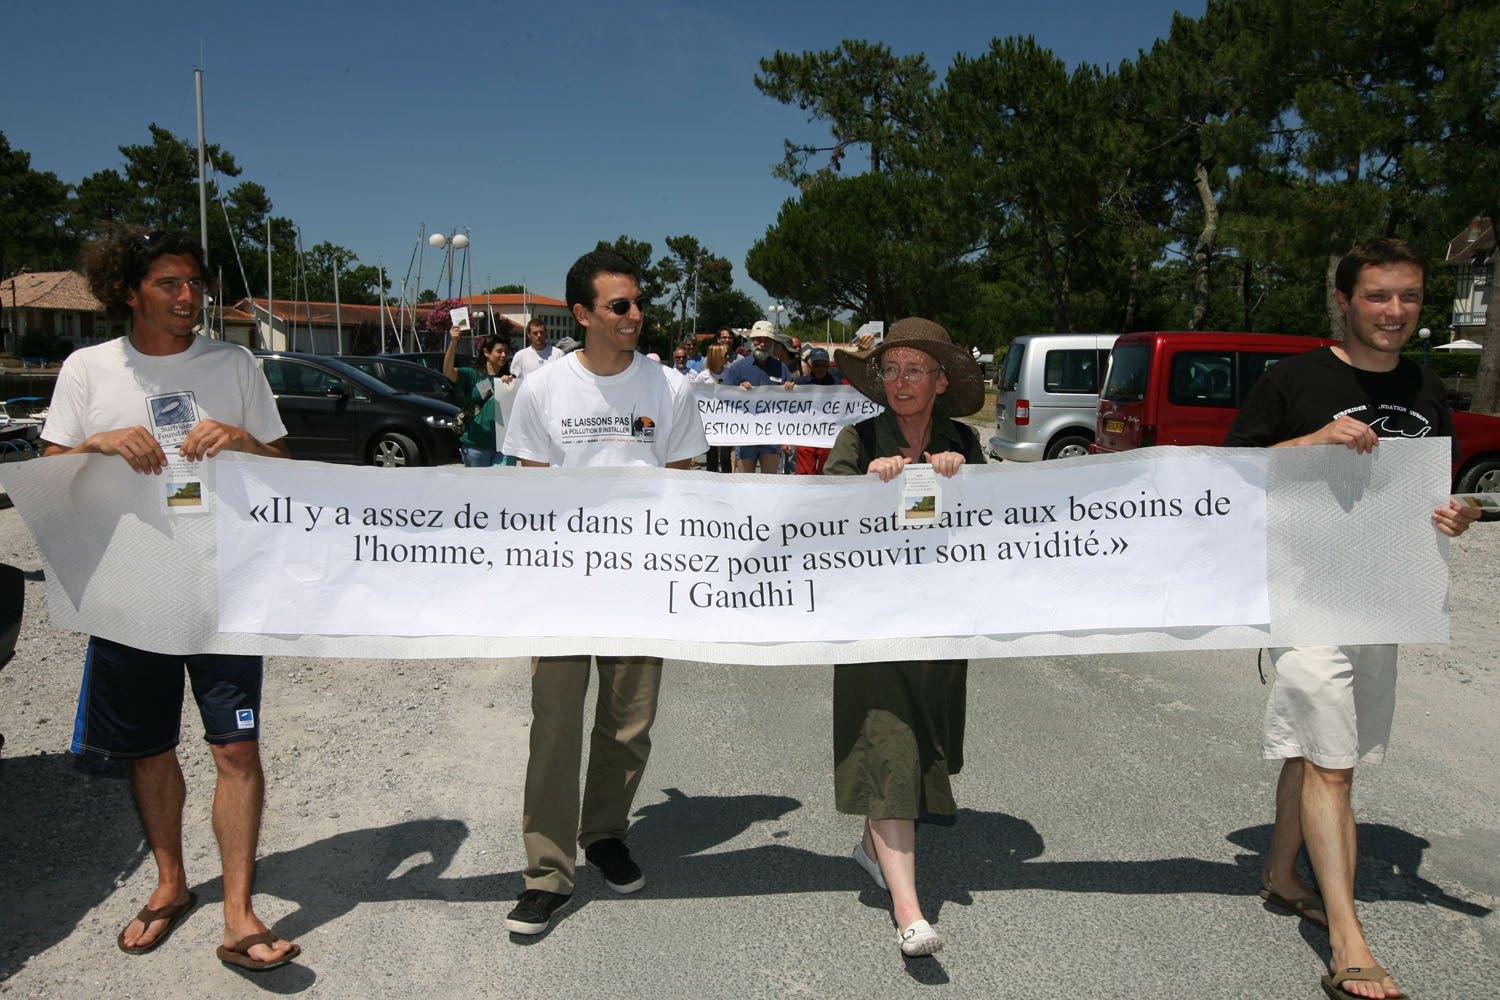 les manifestants longent les limites de l'extension, Gandhi en citation